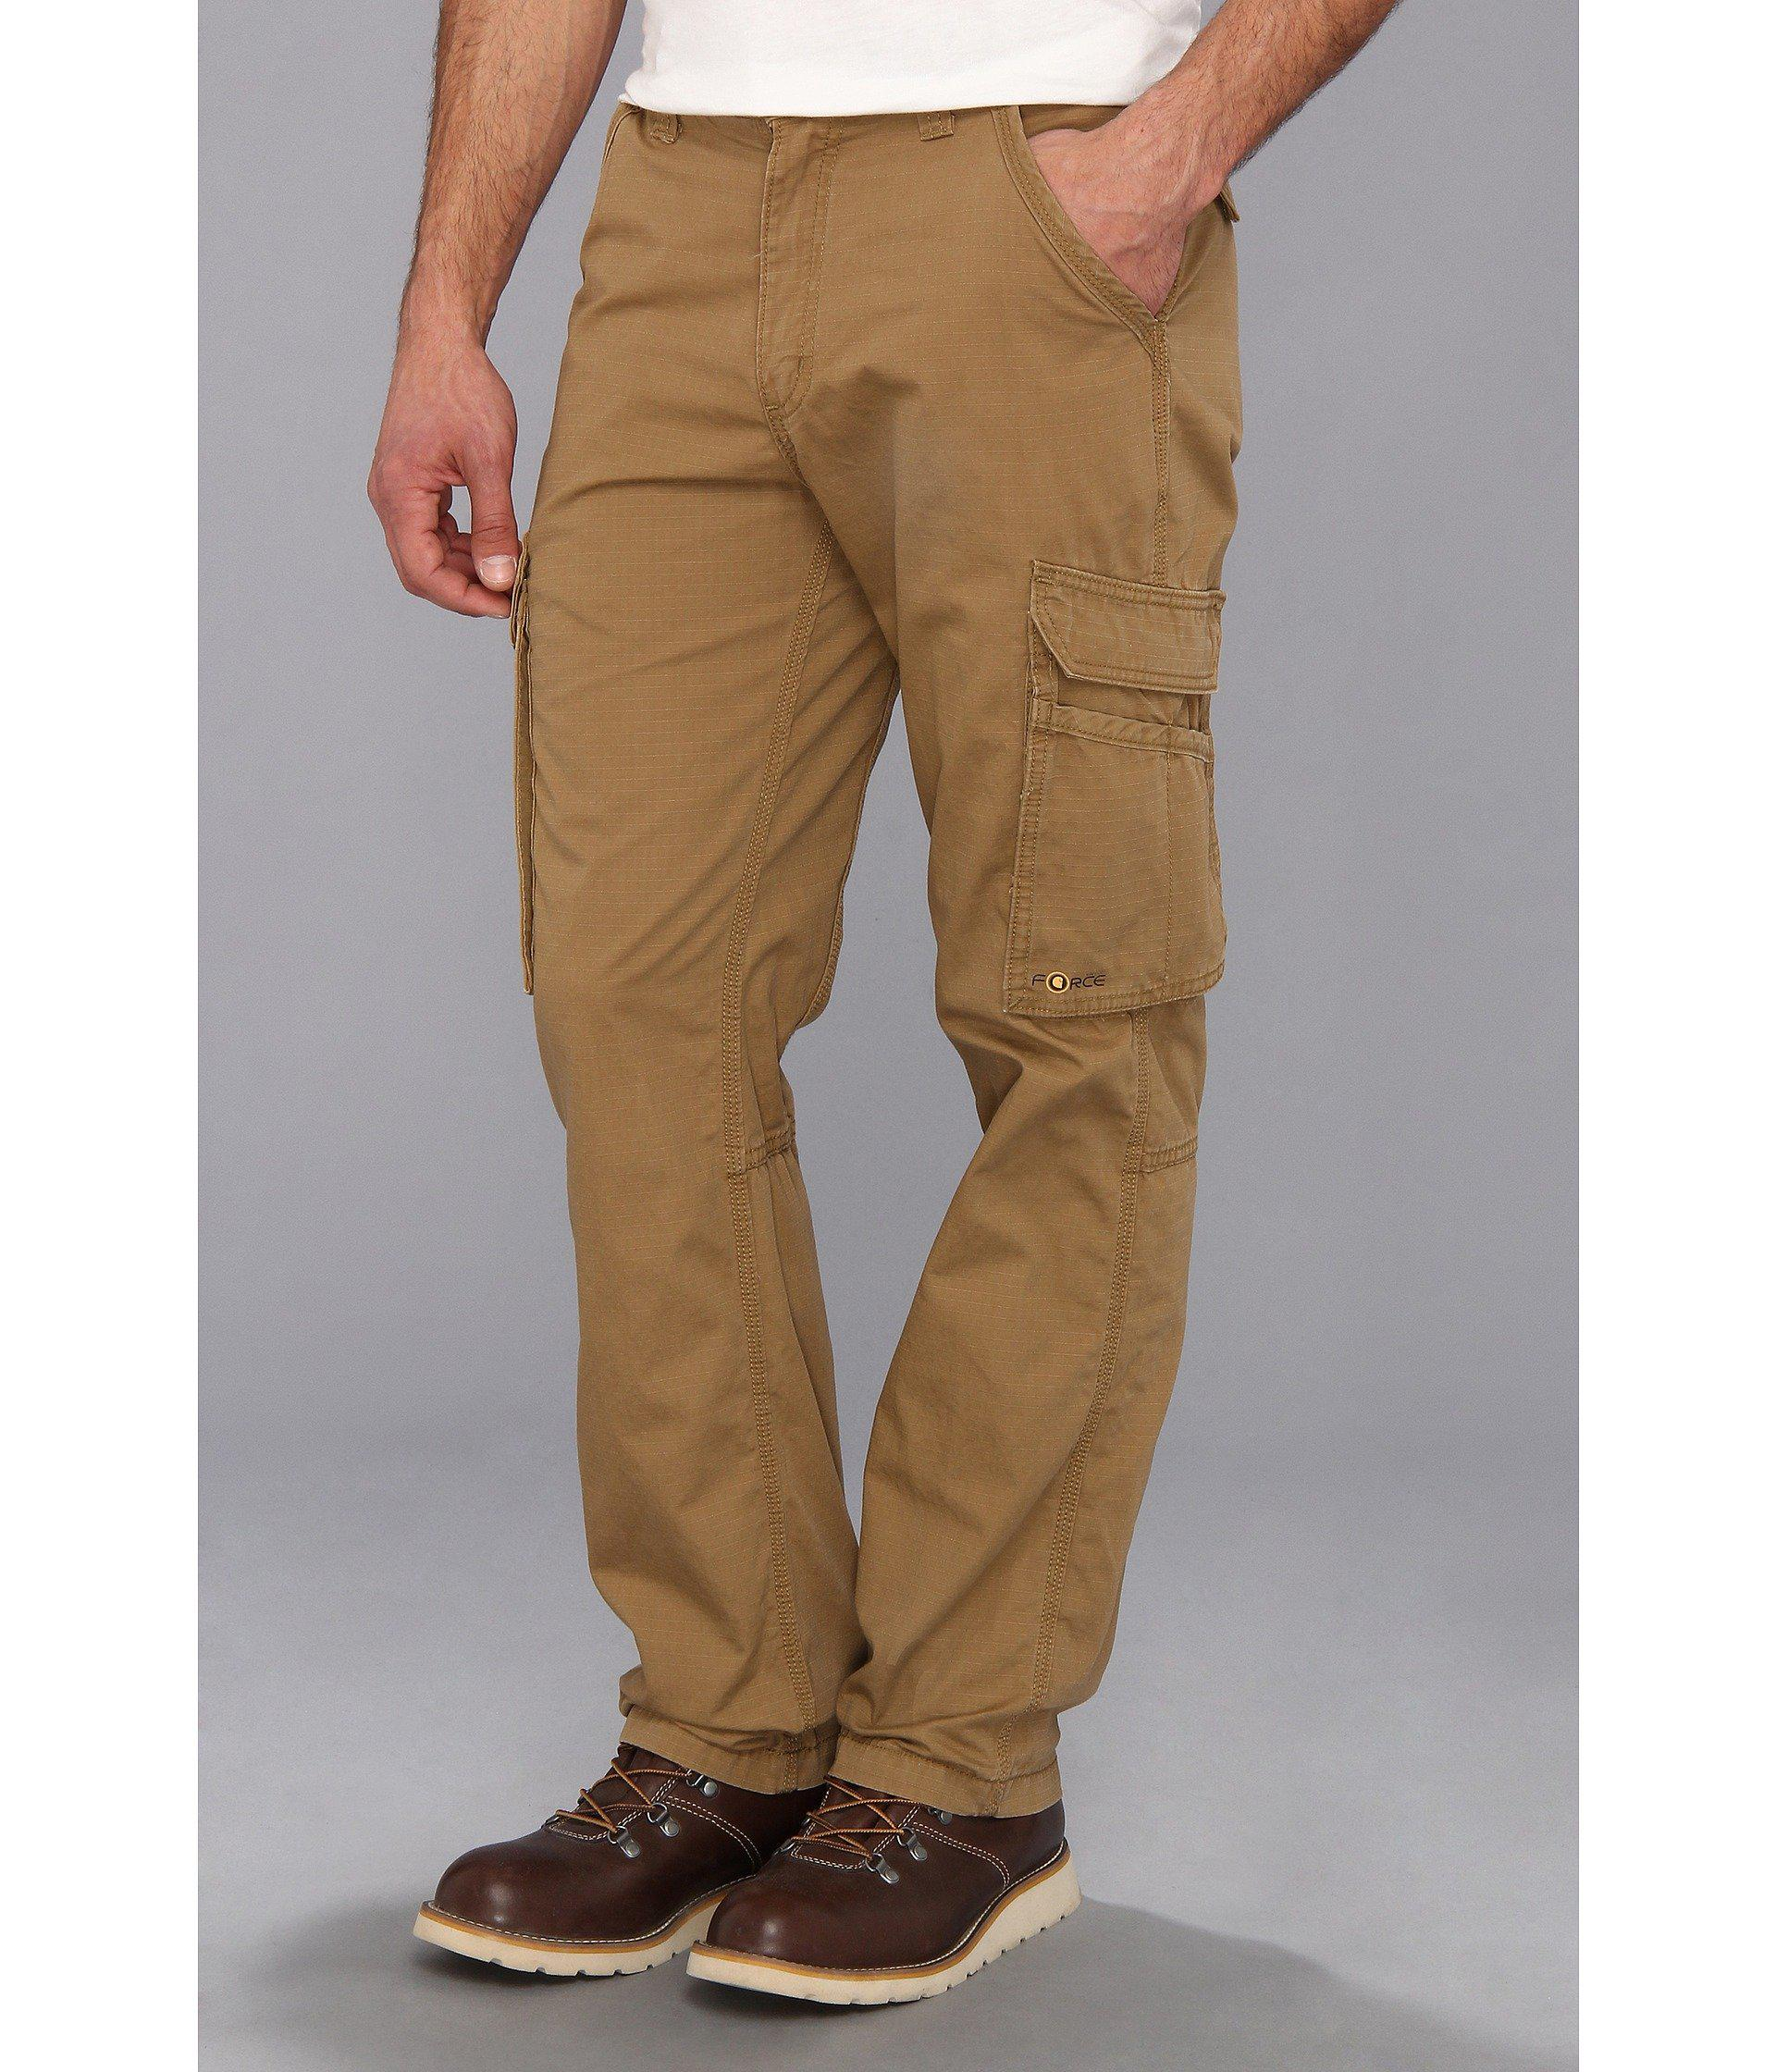 bf61bf6e Pants Carhartt Force Tappen Cargo Pants